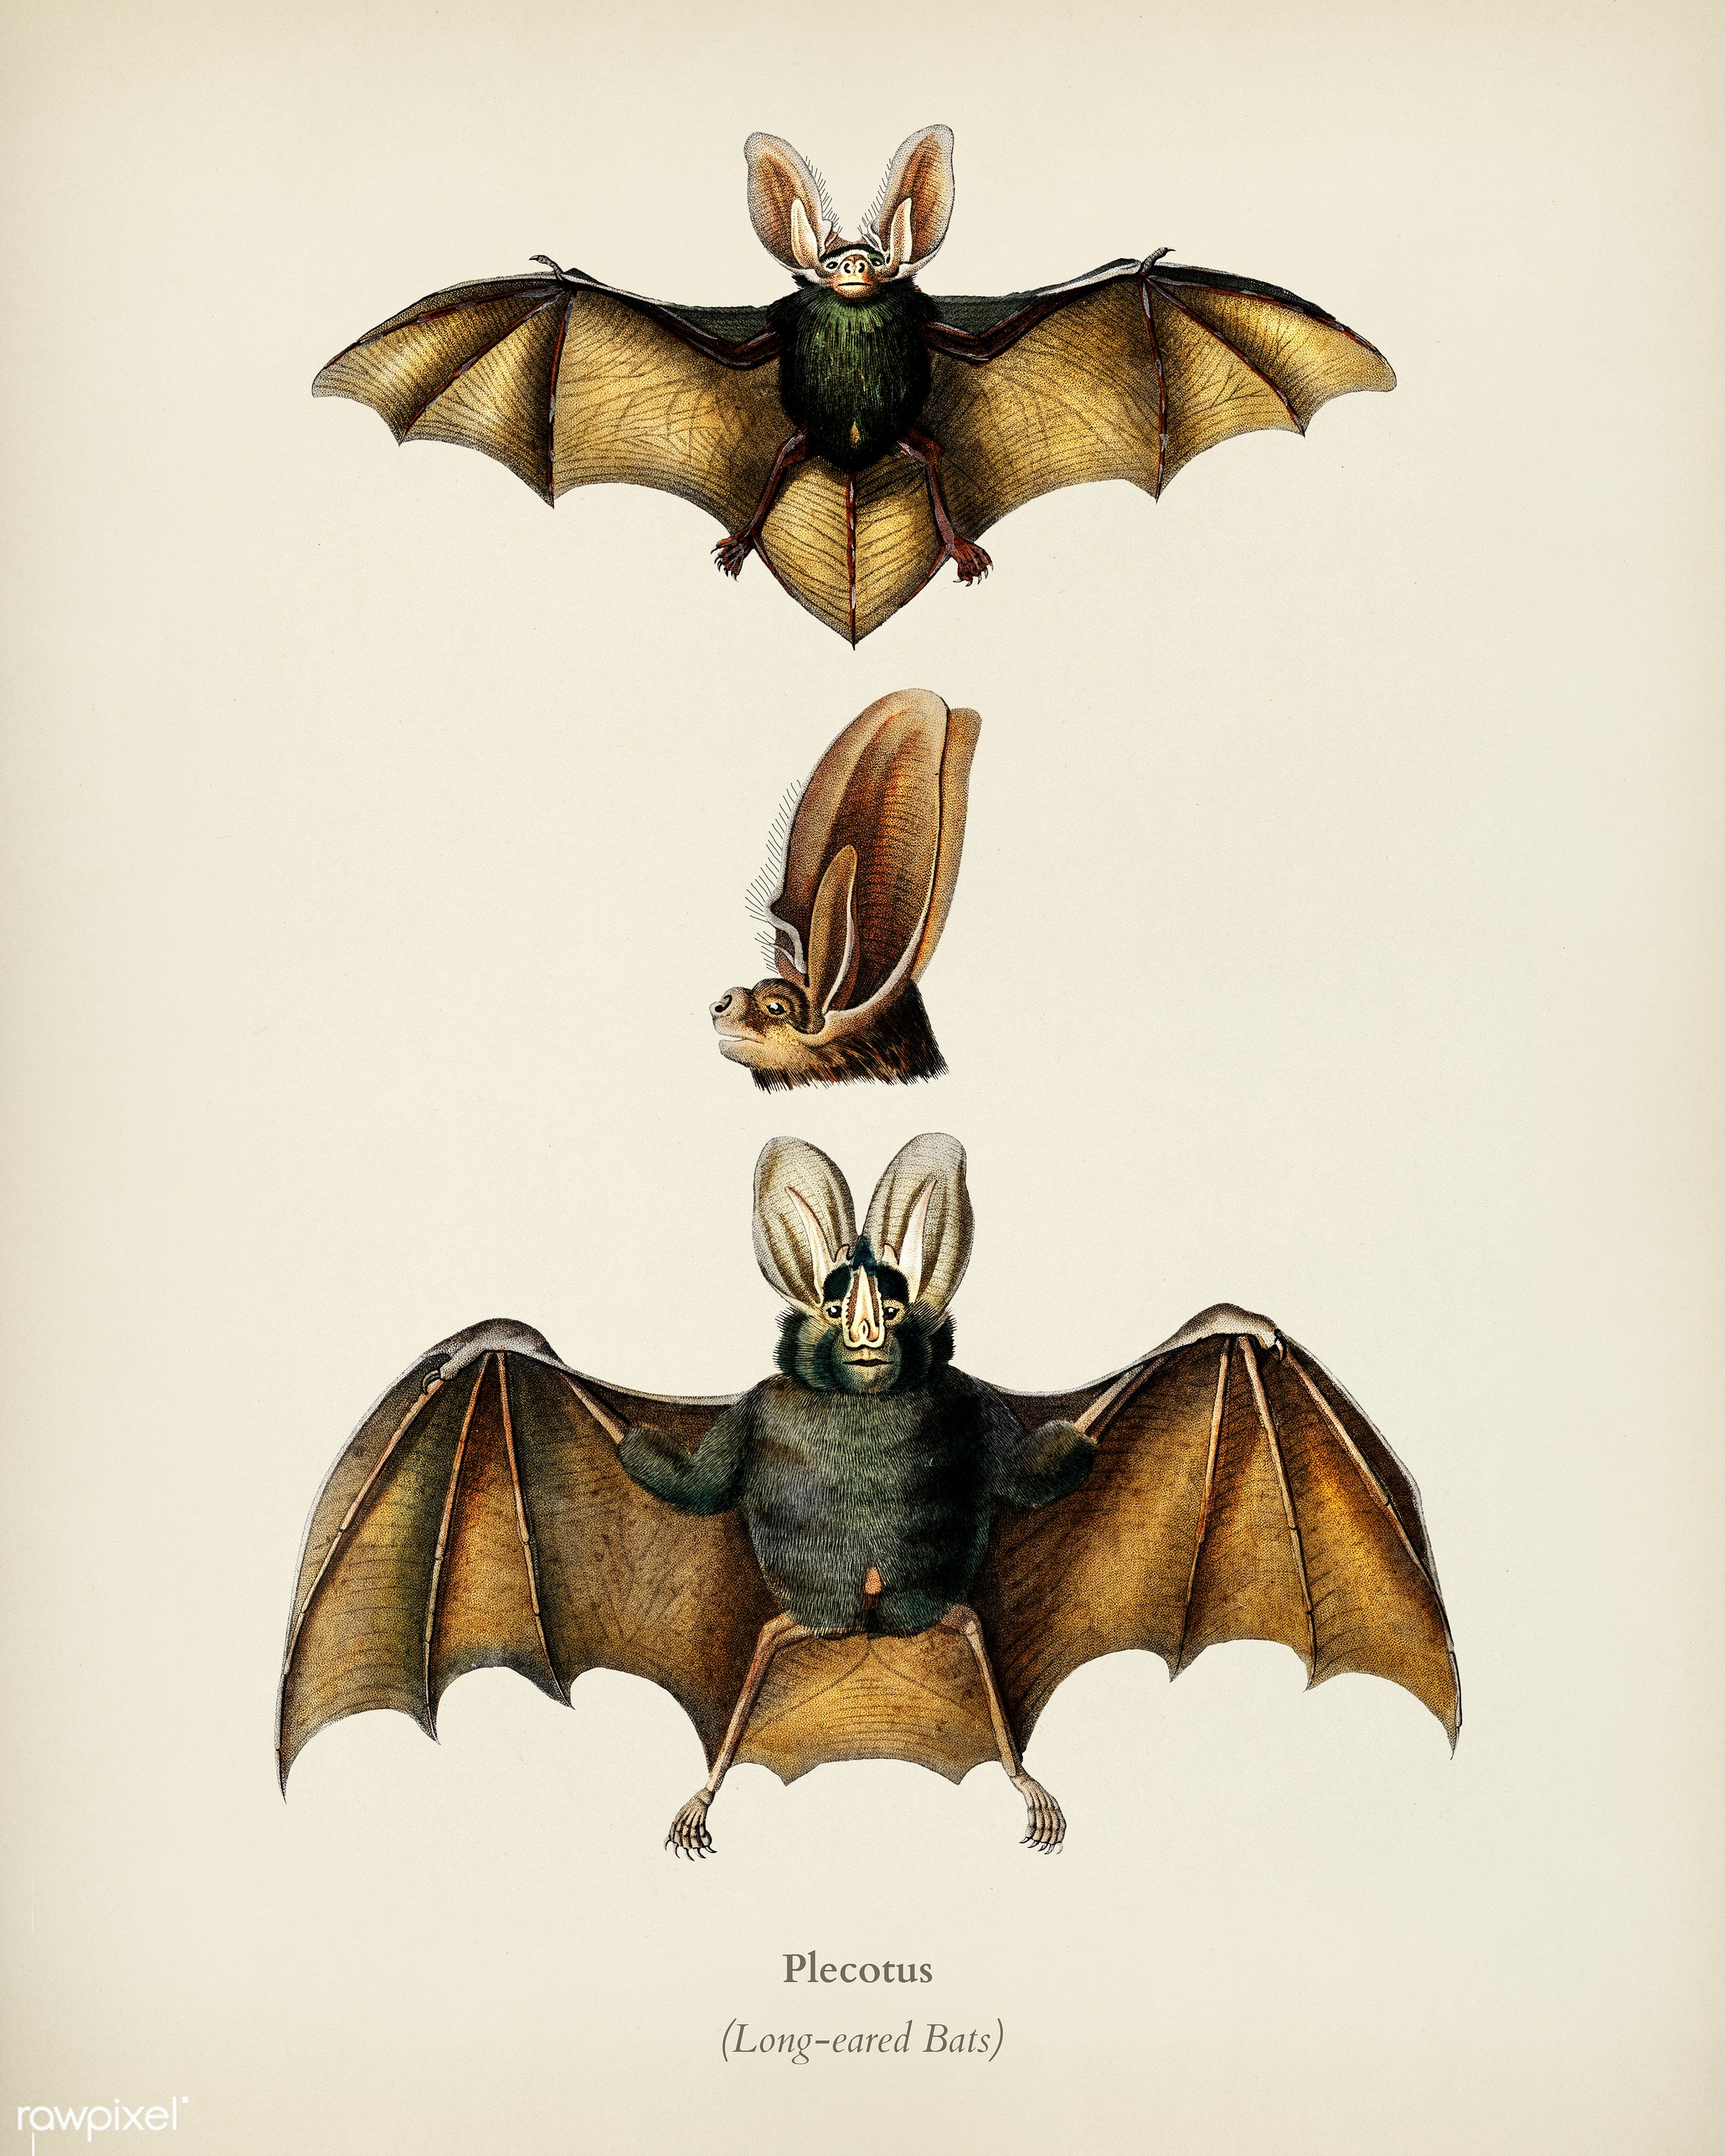 Plecotus illustrated by Charles Dessalines D' Orbigny (1806-1876). Digitally enhanced from our own 1892 edition of...